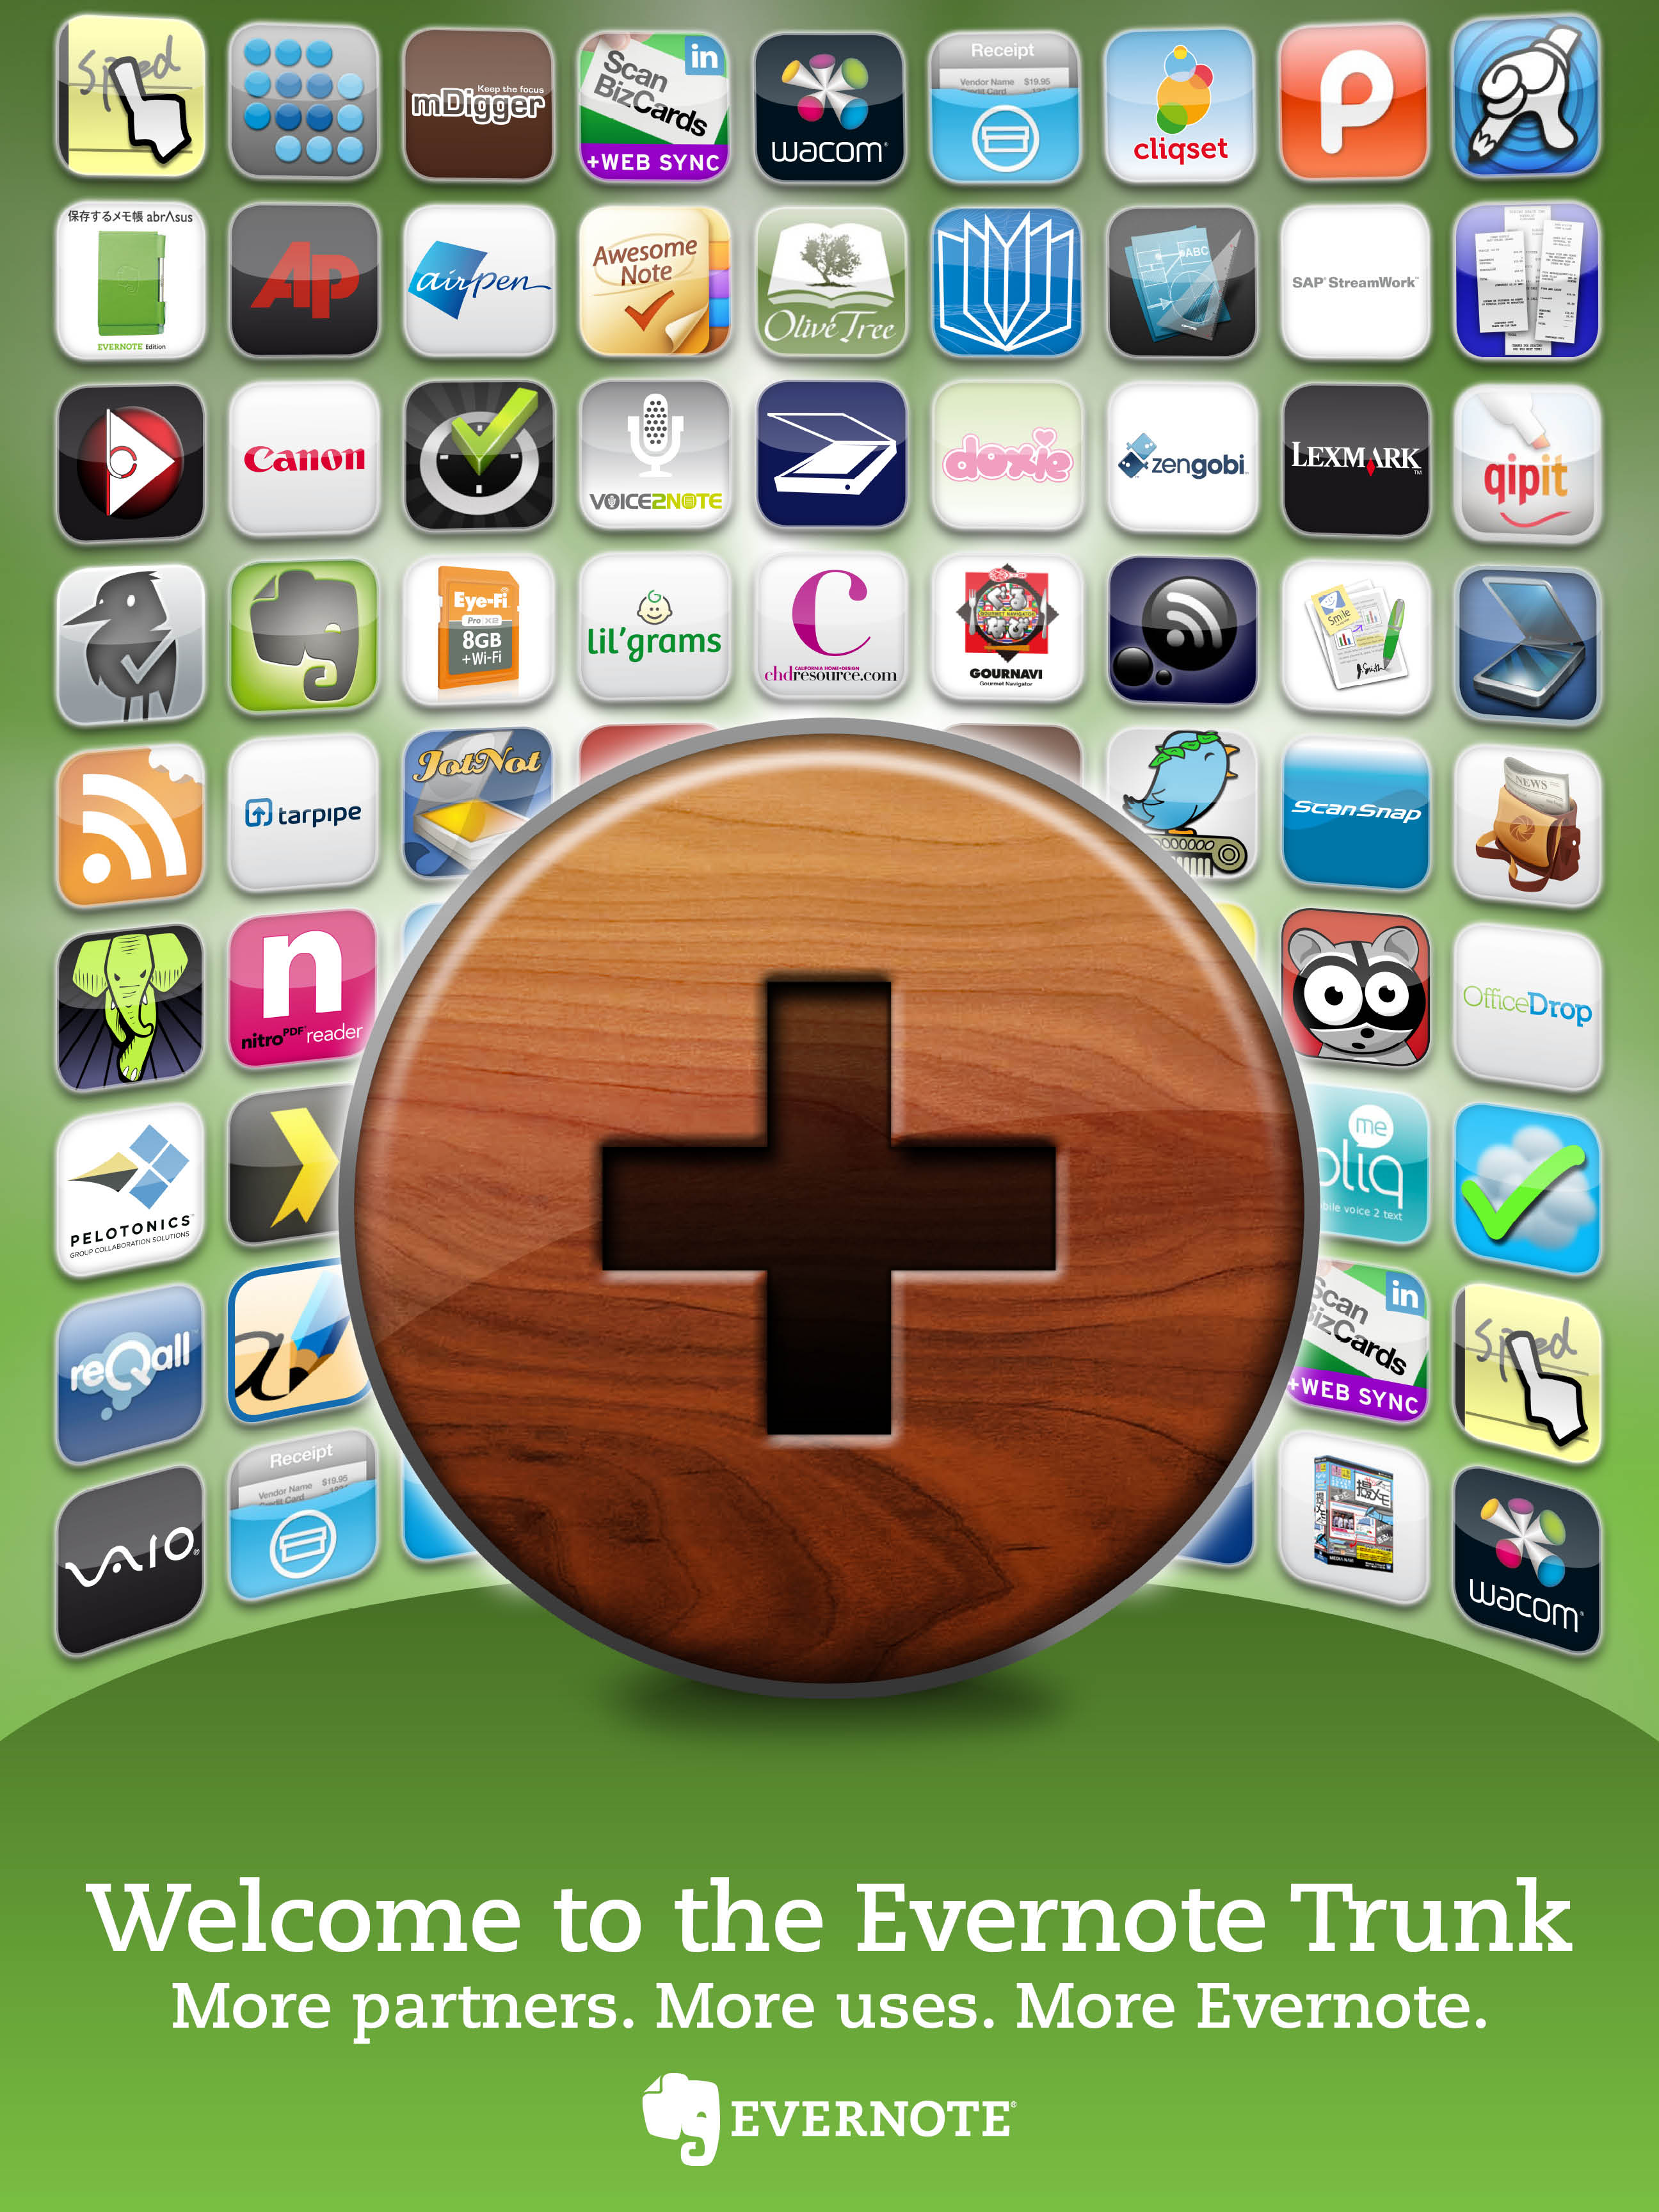 Evernote Trunk Poster